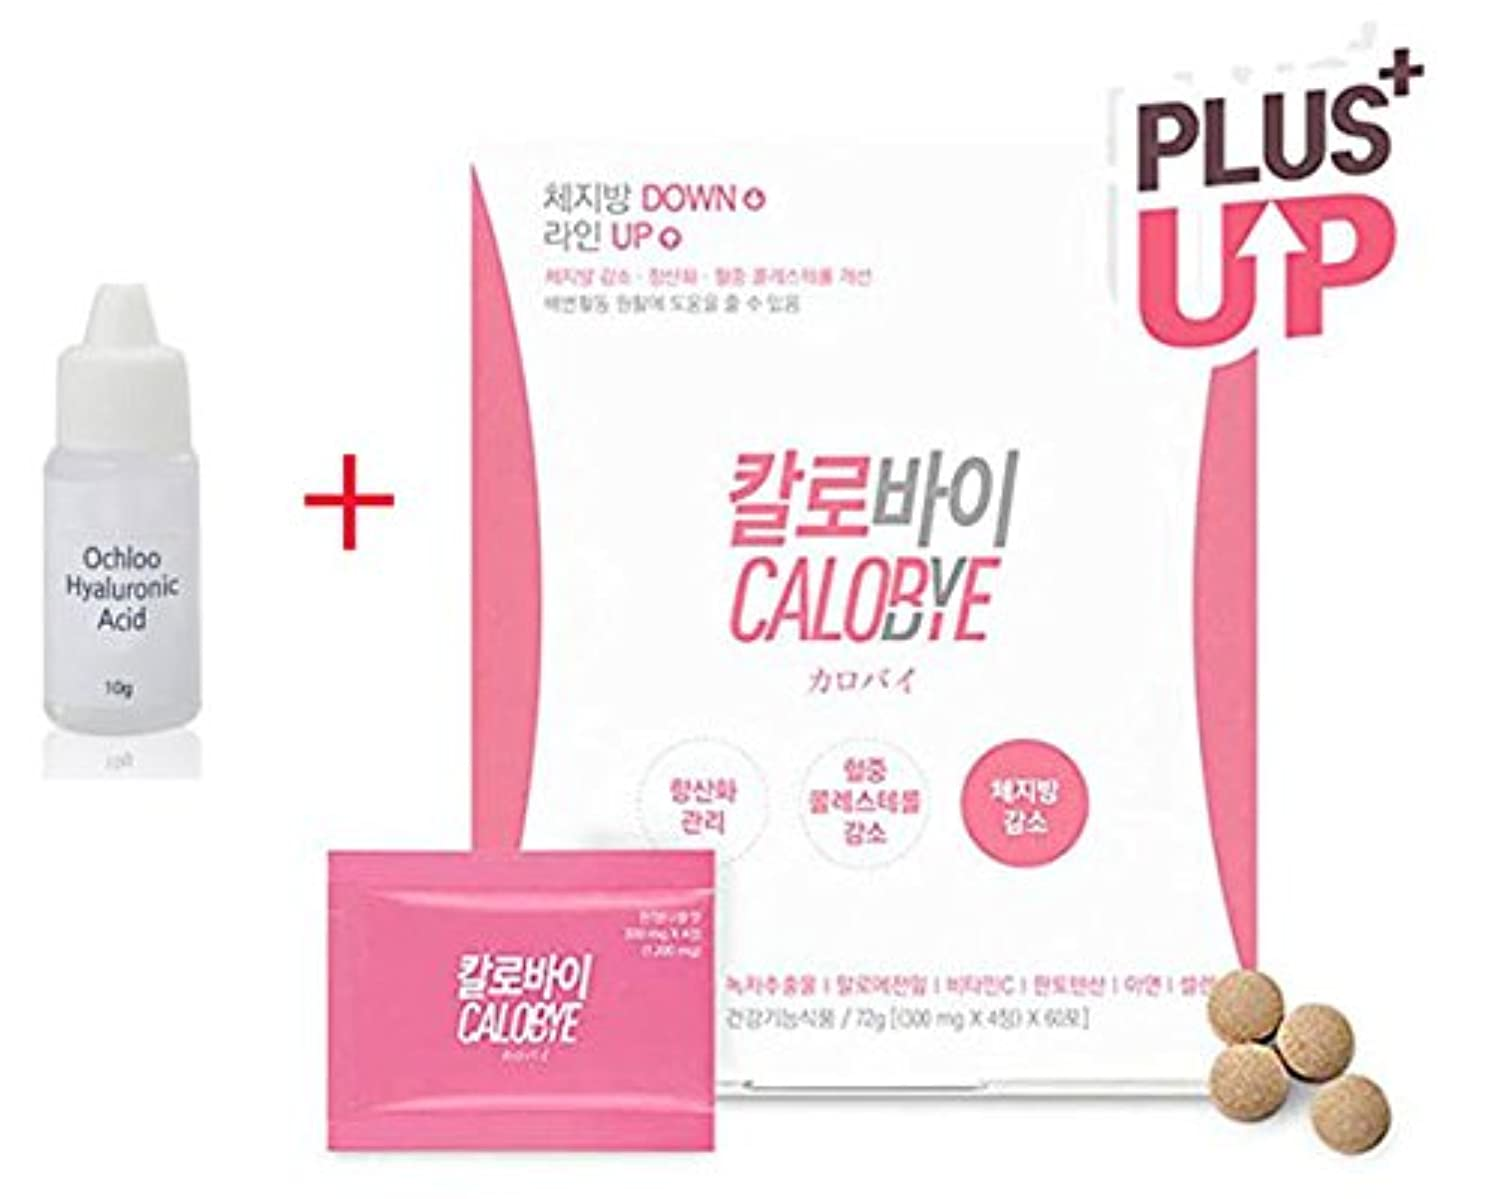 取り消す刃前にNew CALOBYE Plus Up Weight Loss Diet Kits for 1month (240pills/2times in a day) ‎CALOBYE+(カロバイプラス) ダイエット Made in Korea + Ochloo Hyaluronic acid 10m